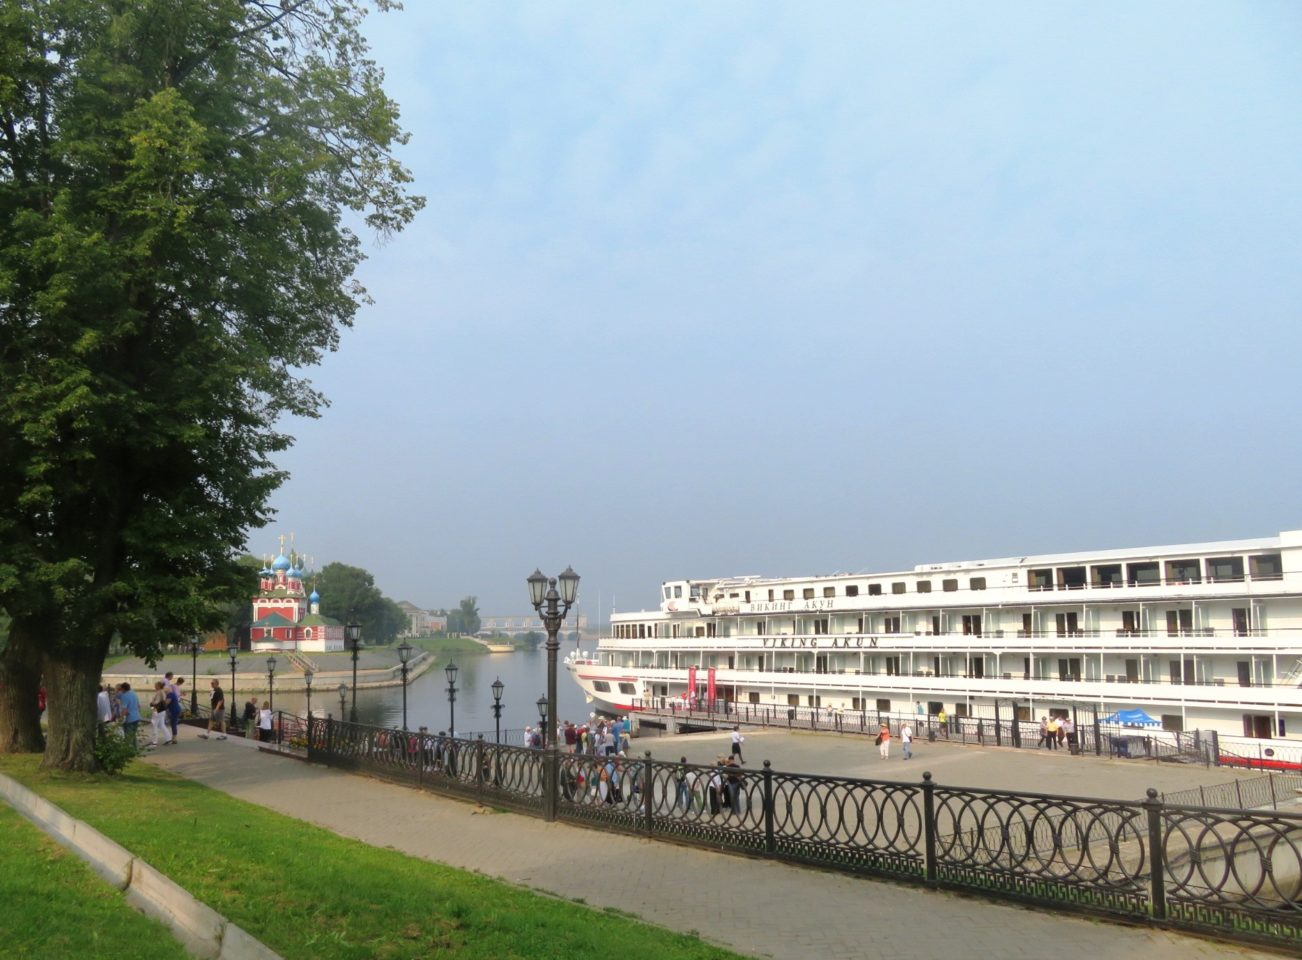 Viking Akun river cruise ship docked on the Volga River in Uglich, Russia